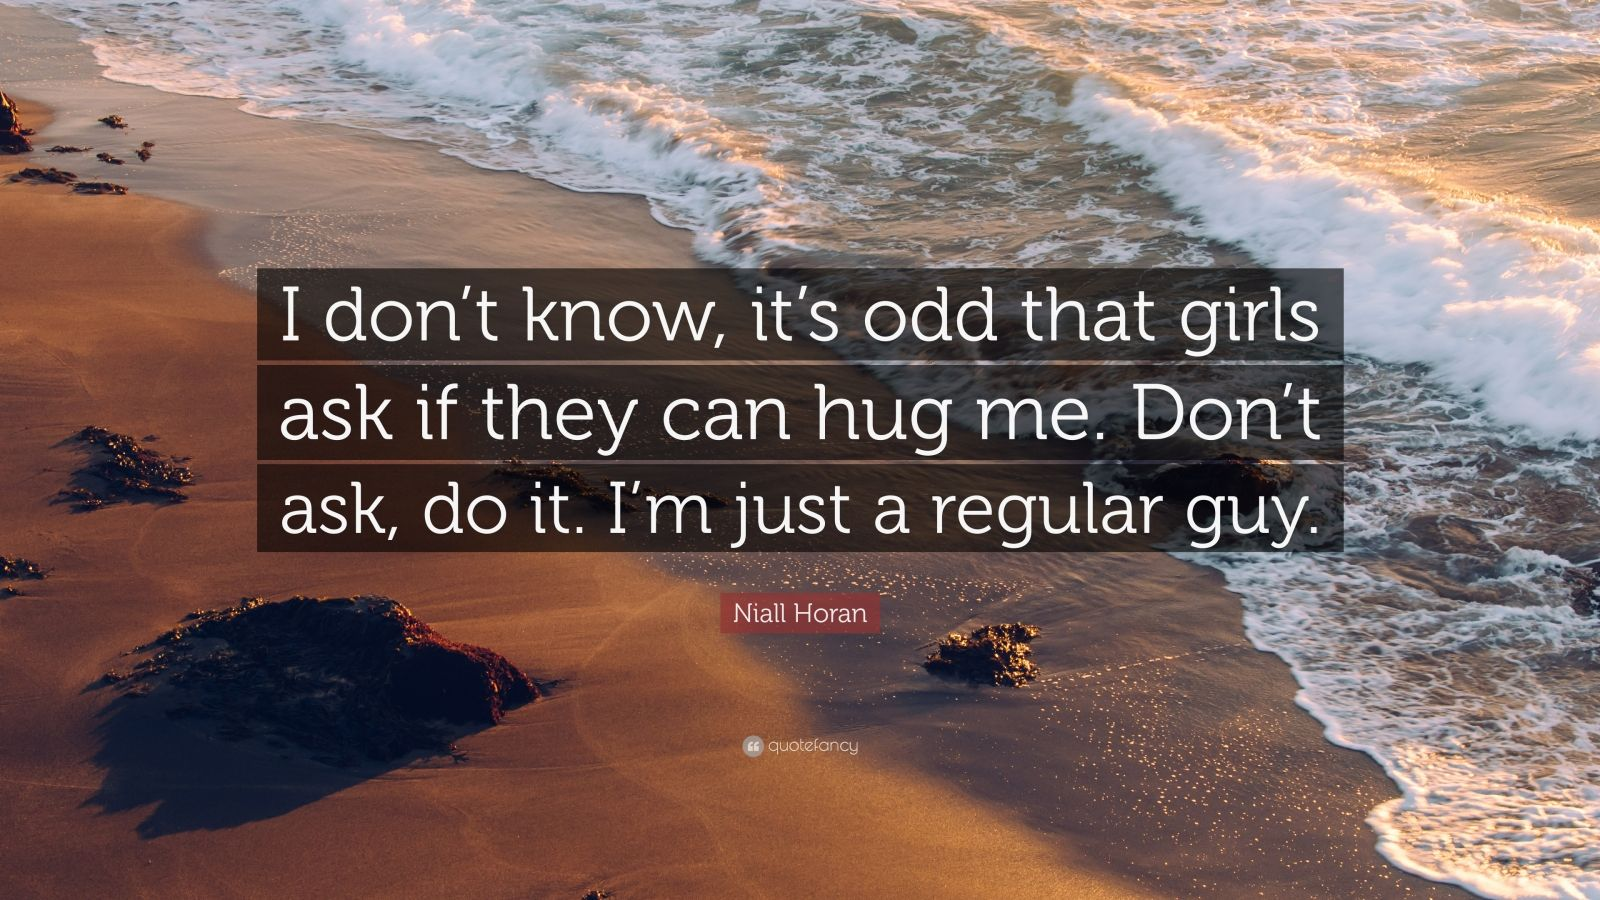 """Niall Horan Quote: """"I don't know, it's odd that girls ask if they can hug me. Don't ask, do it. I'm just a regular guy."""""""